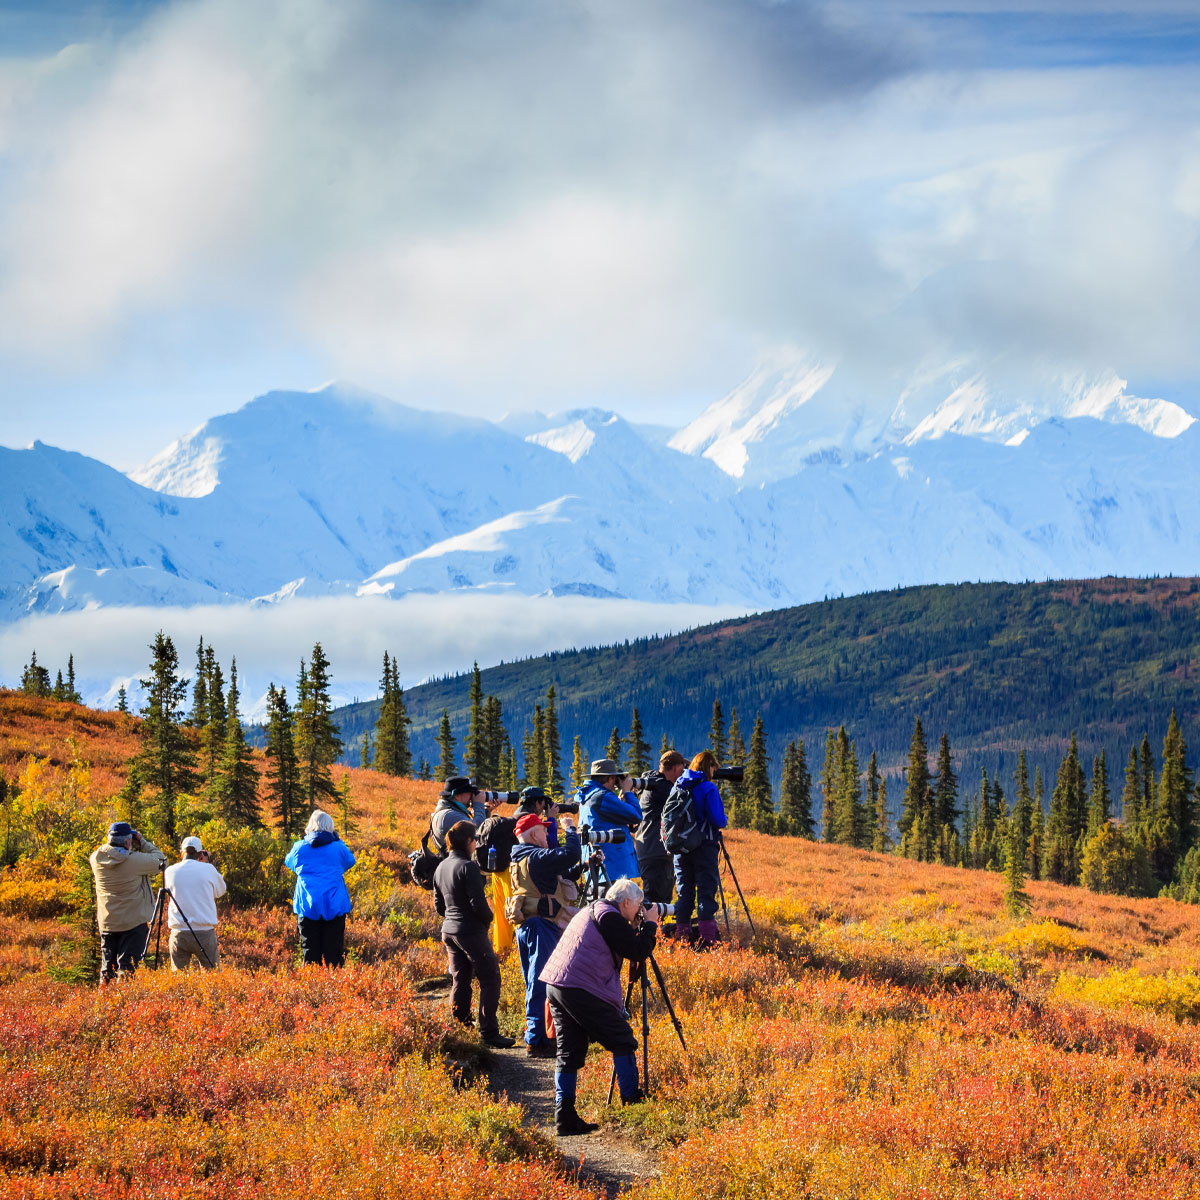 Photographers at Denali